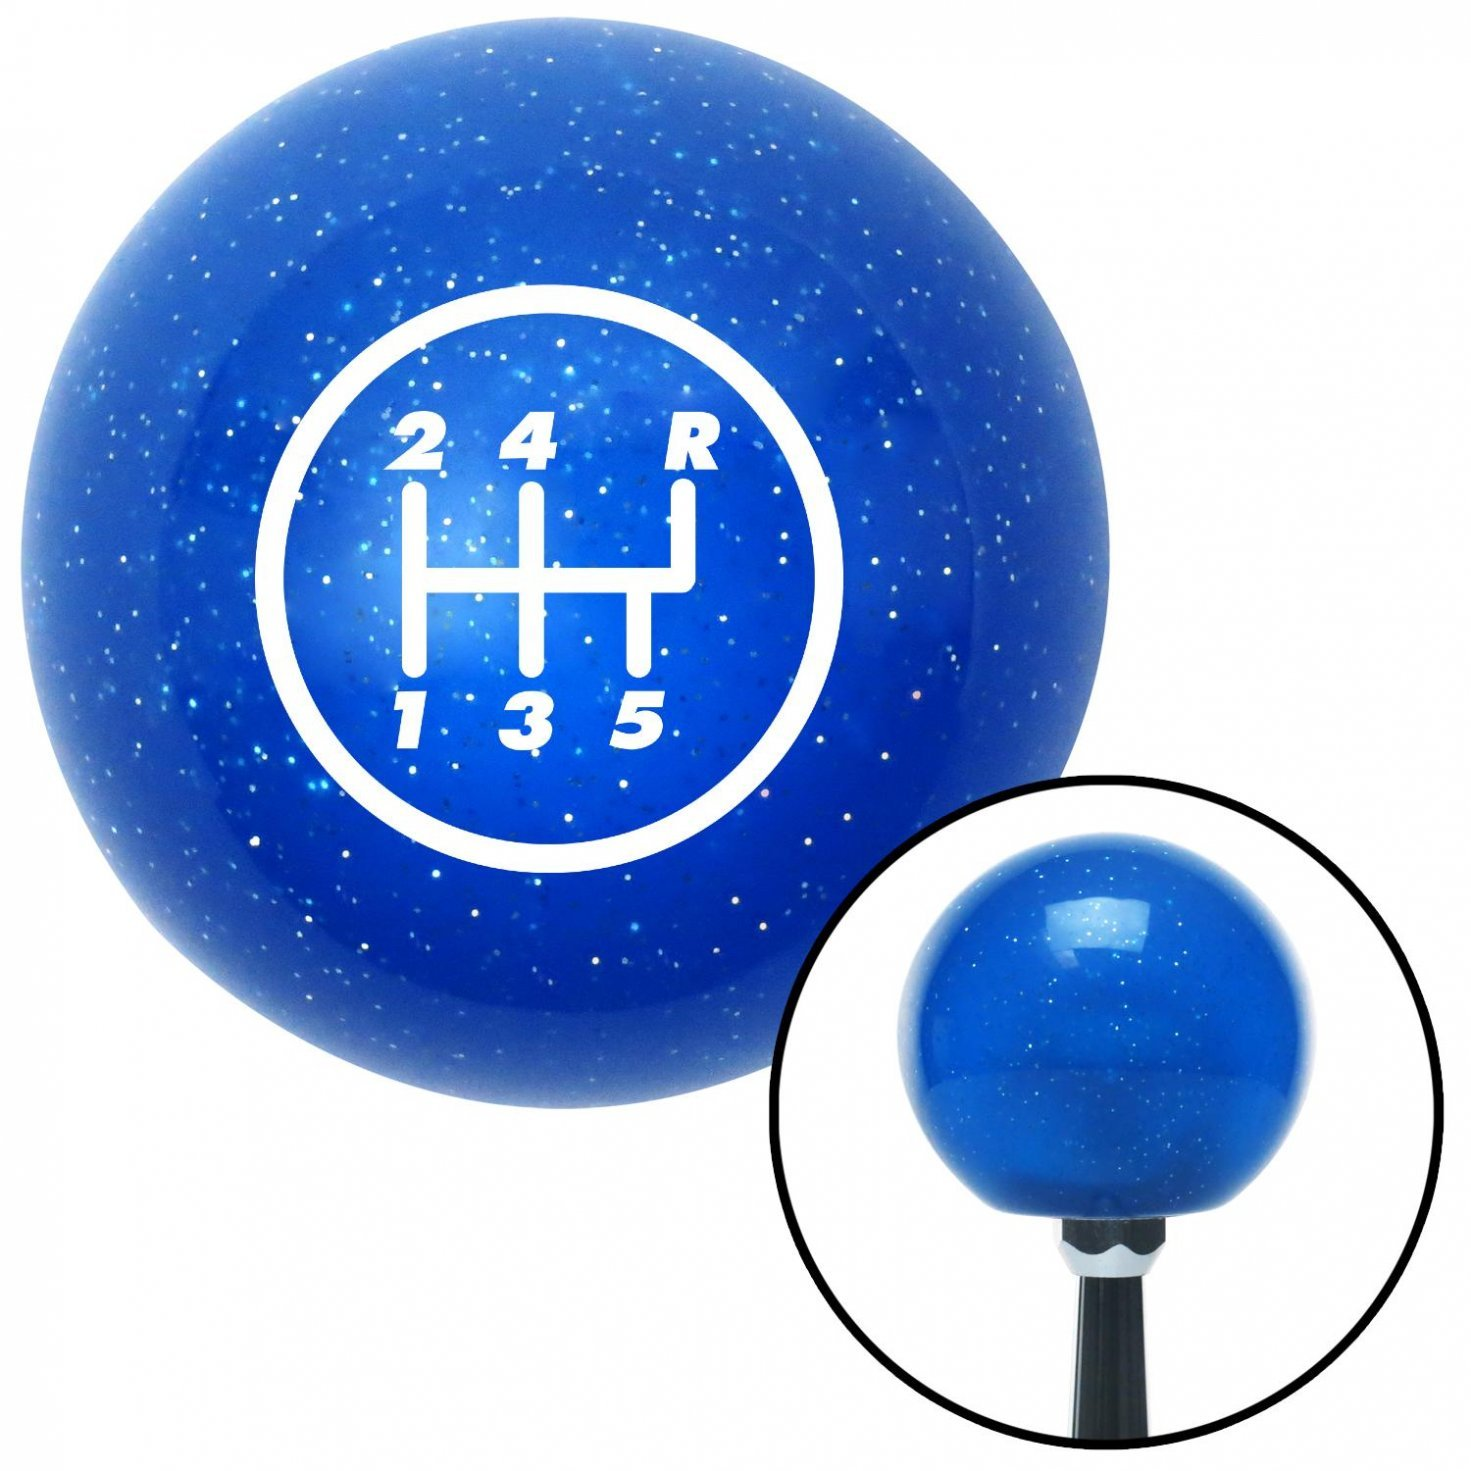 American Shifter 19623 Blue Metal Flake Shift Knob with 16mm x 1.5 Insert White 5 Speed Shift Pattern - 5RUR